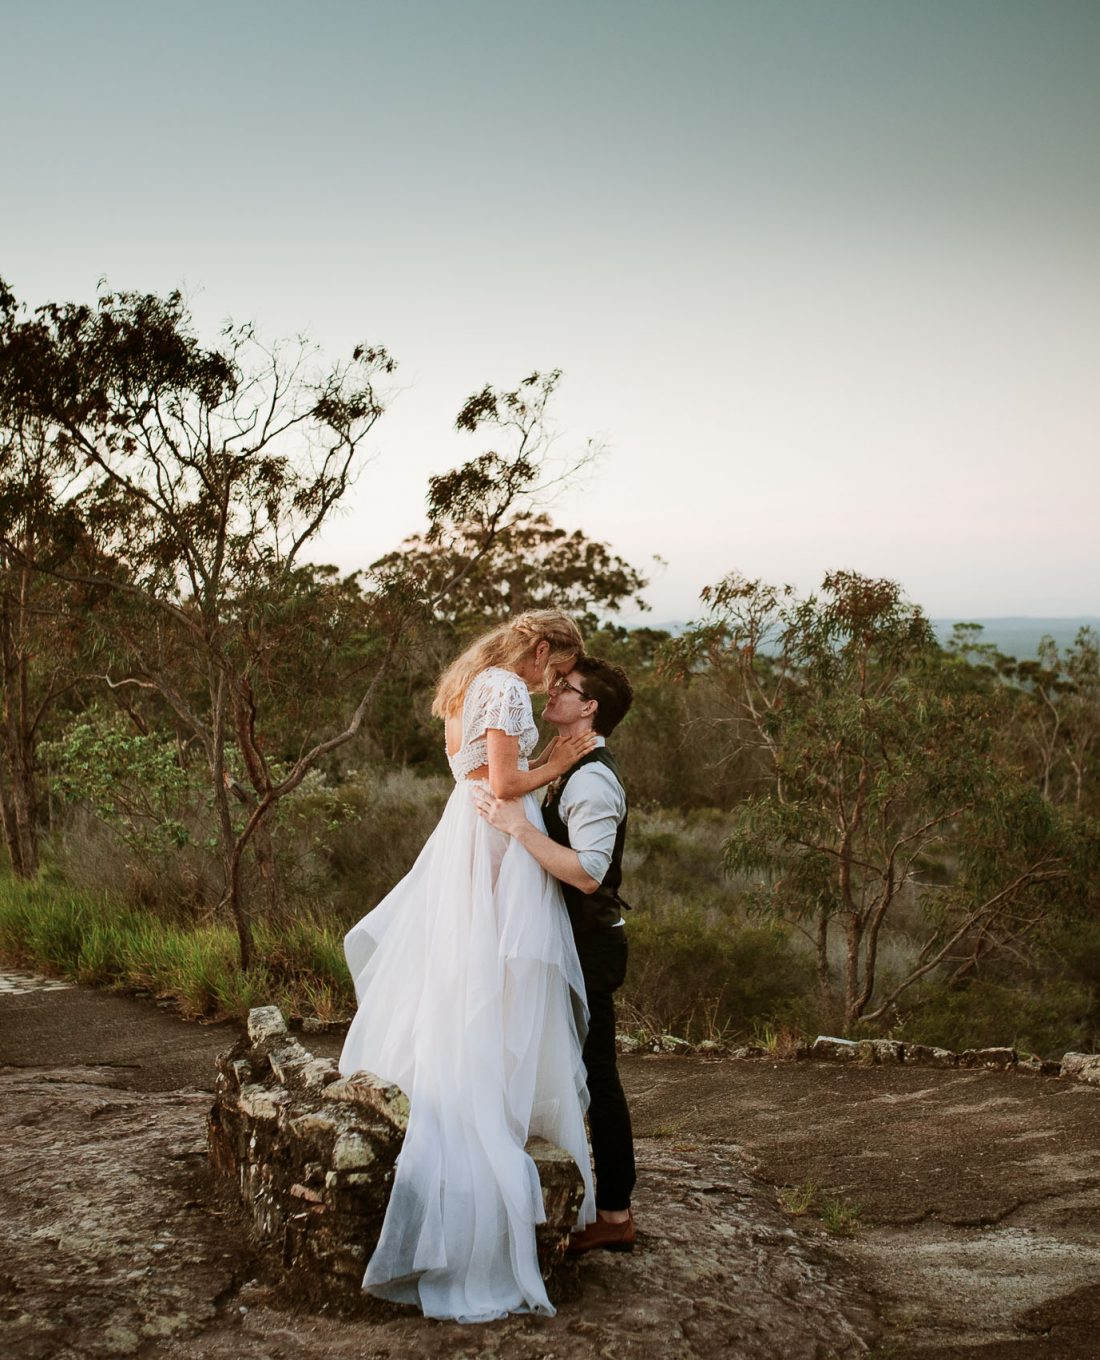 Sunshine Coast Mountain Top Married Couple Embracing Photographed by Terri Hanlon Photography